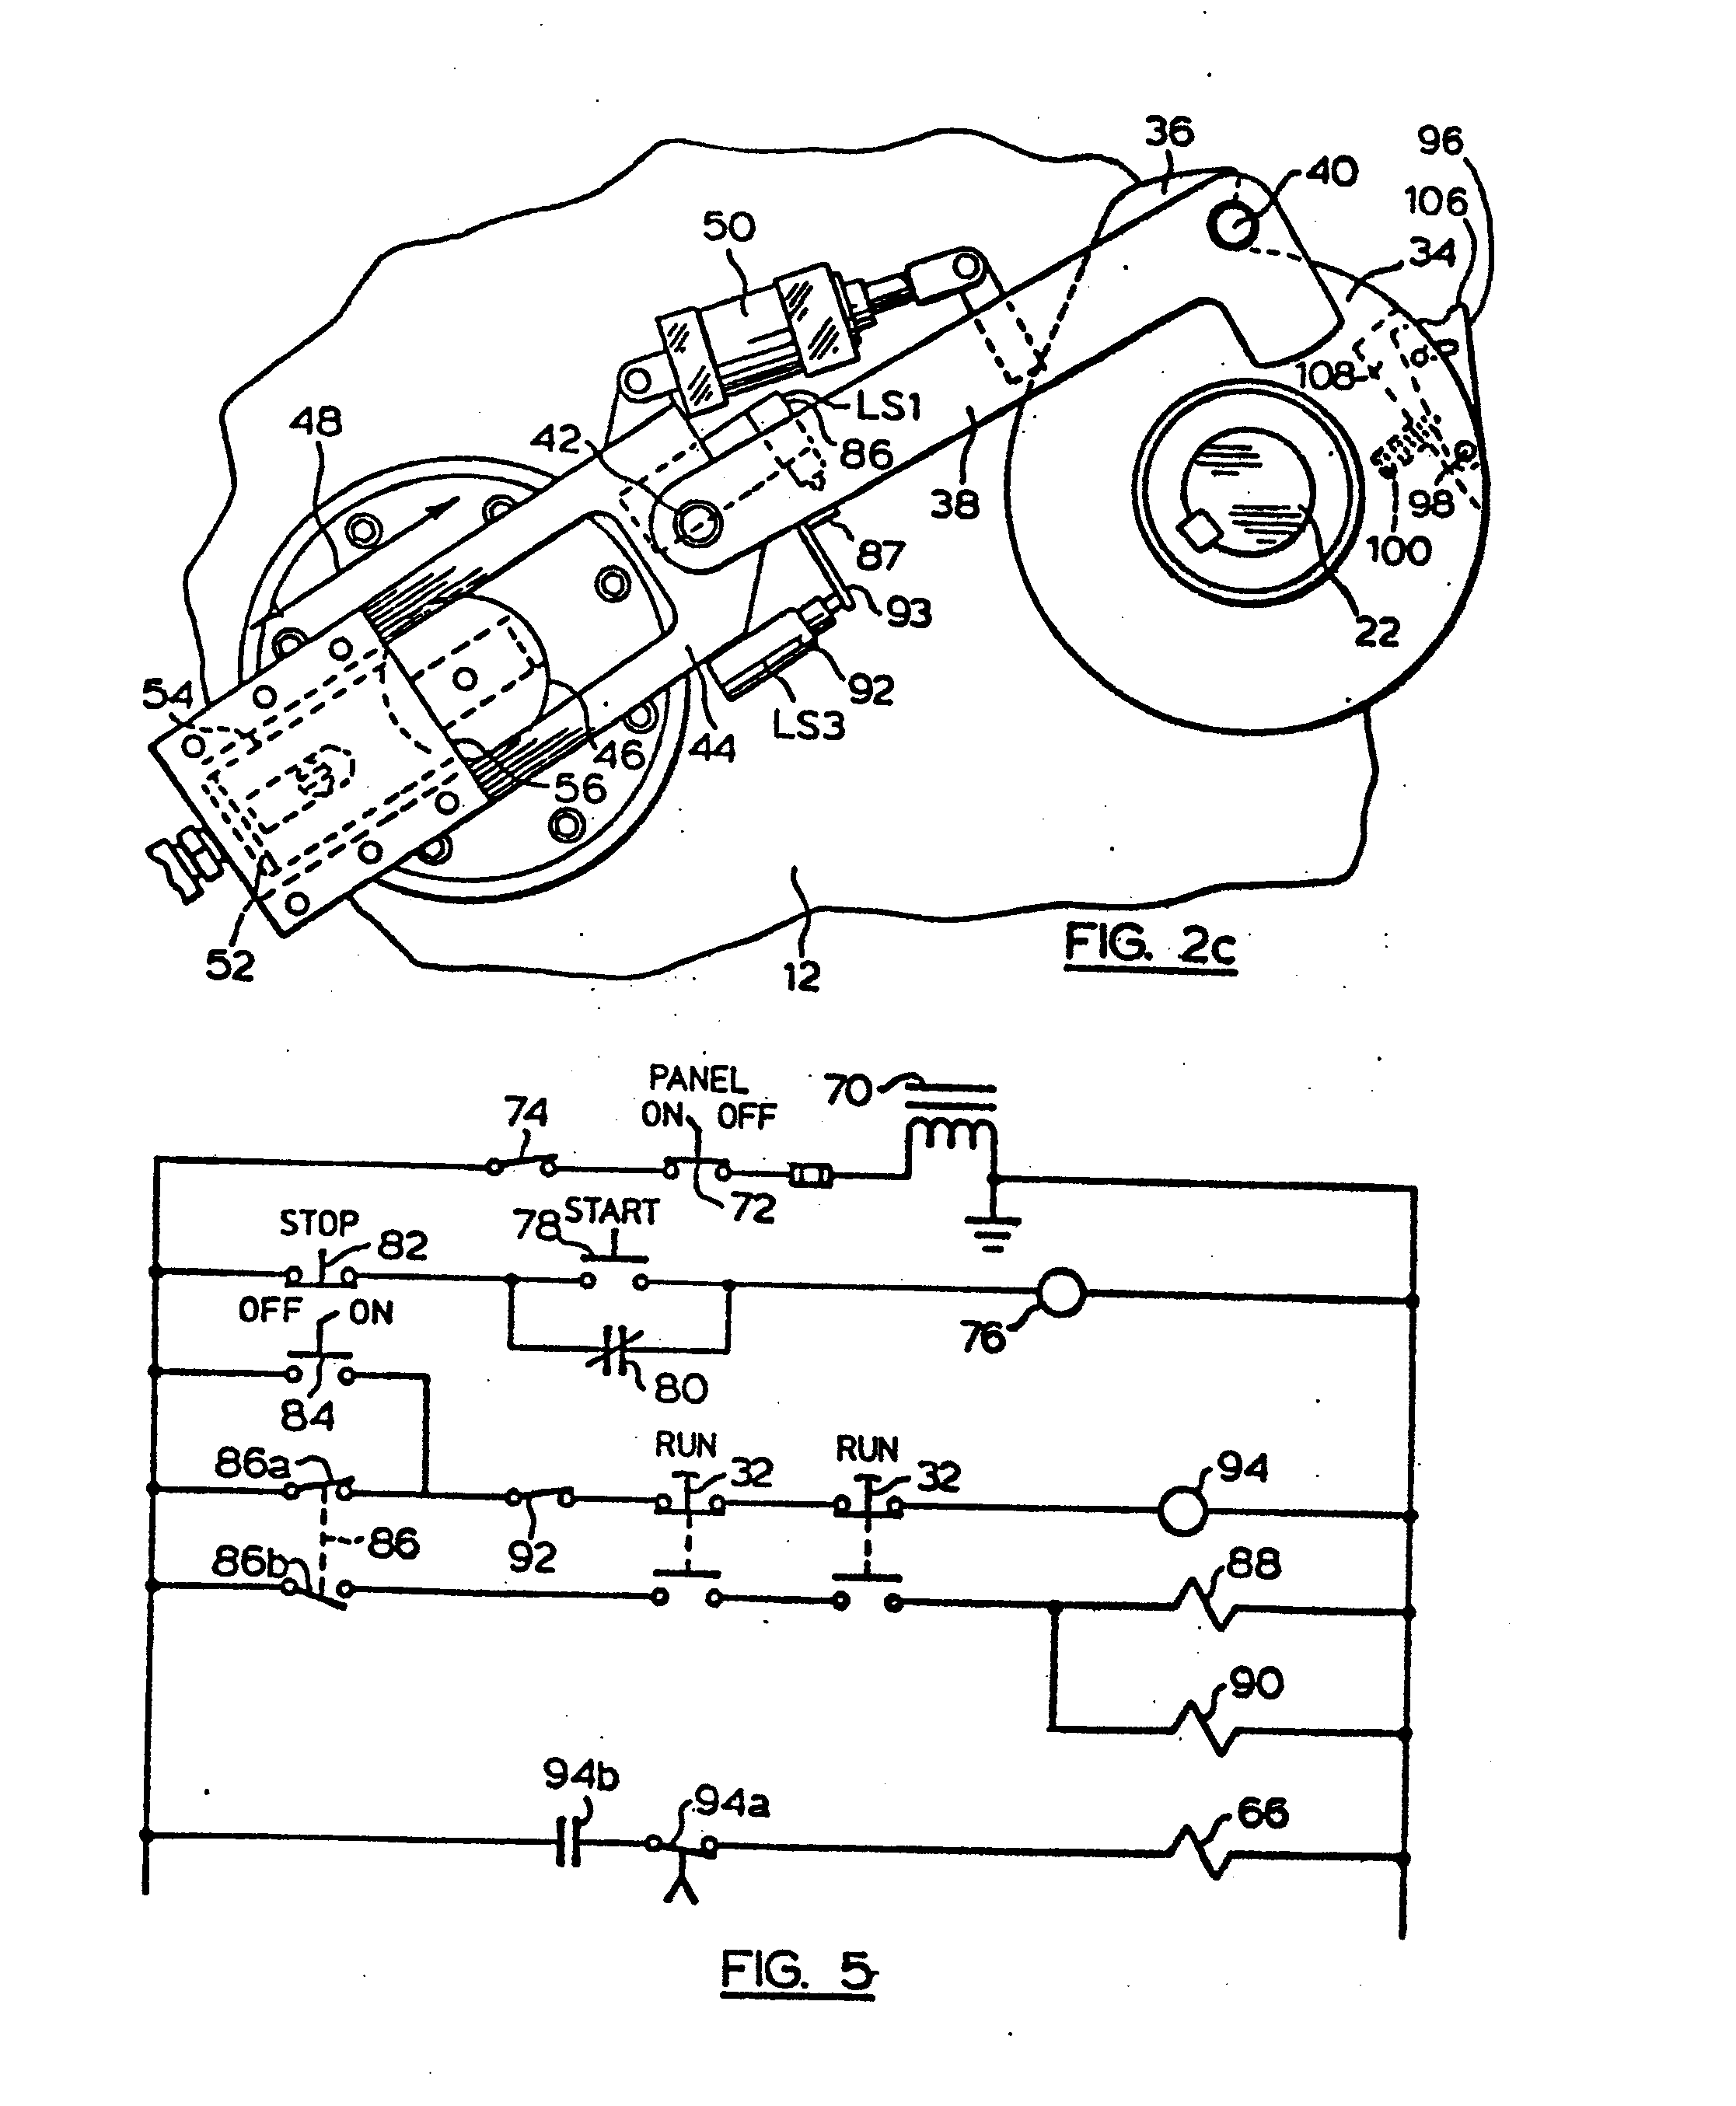 roto phase wiring diagram with 1952 John Deere G Wiring Diagram on Electric Lift Wiring Diagram furthermore 1952 John Deere G Wiring Diagram also Lathe Wiring Diagrams also Arco Rotary Phase Converter Wiring Diagram also Need Diagram For 1987 Ford.